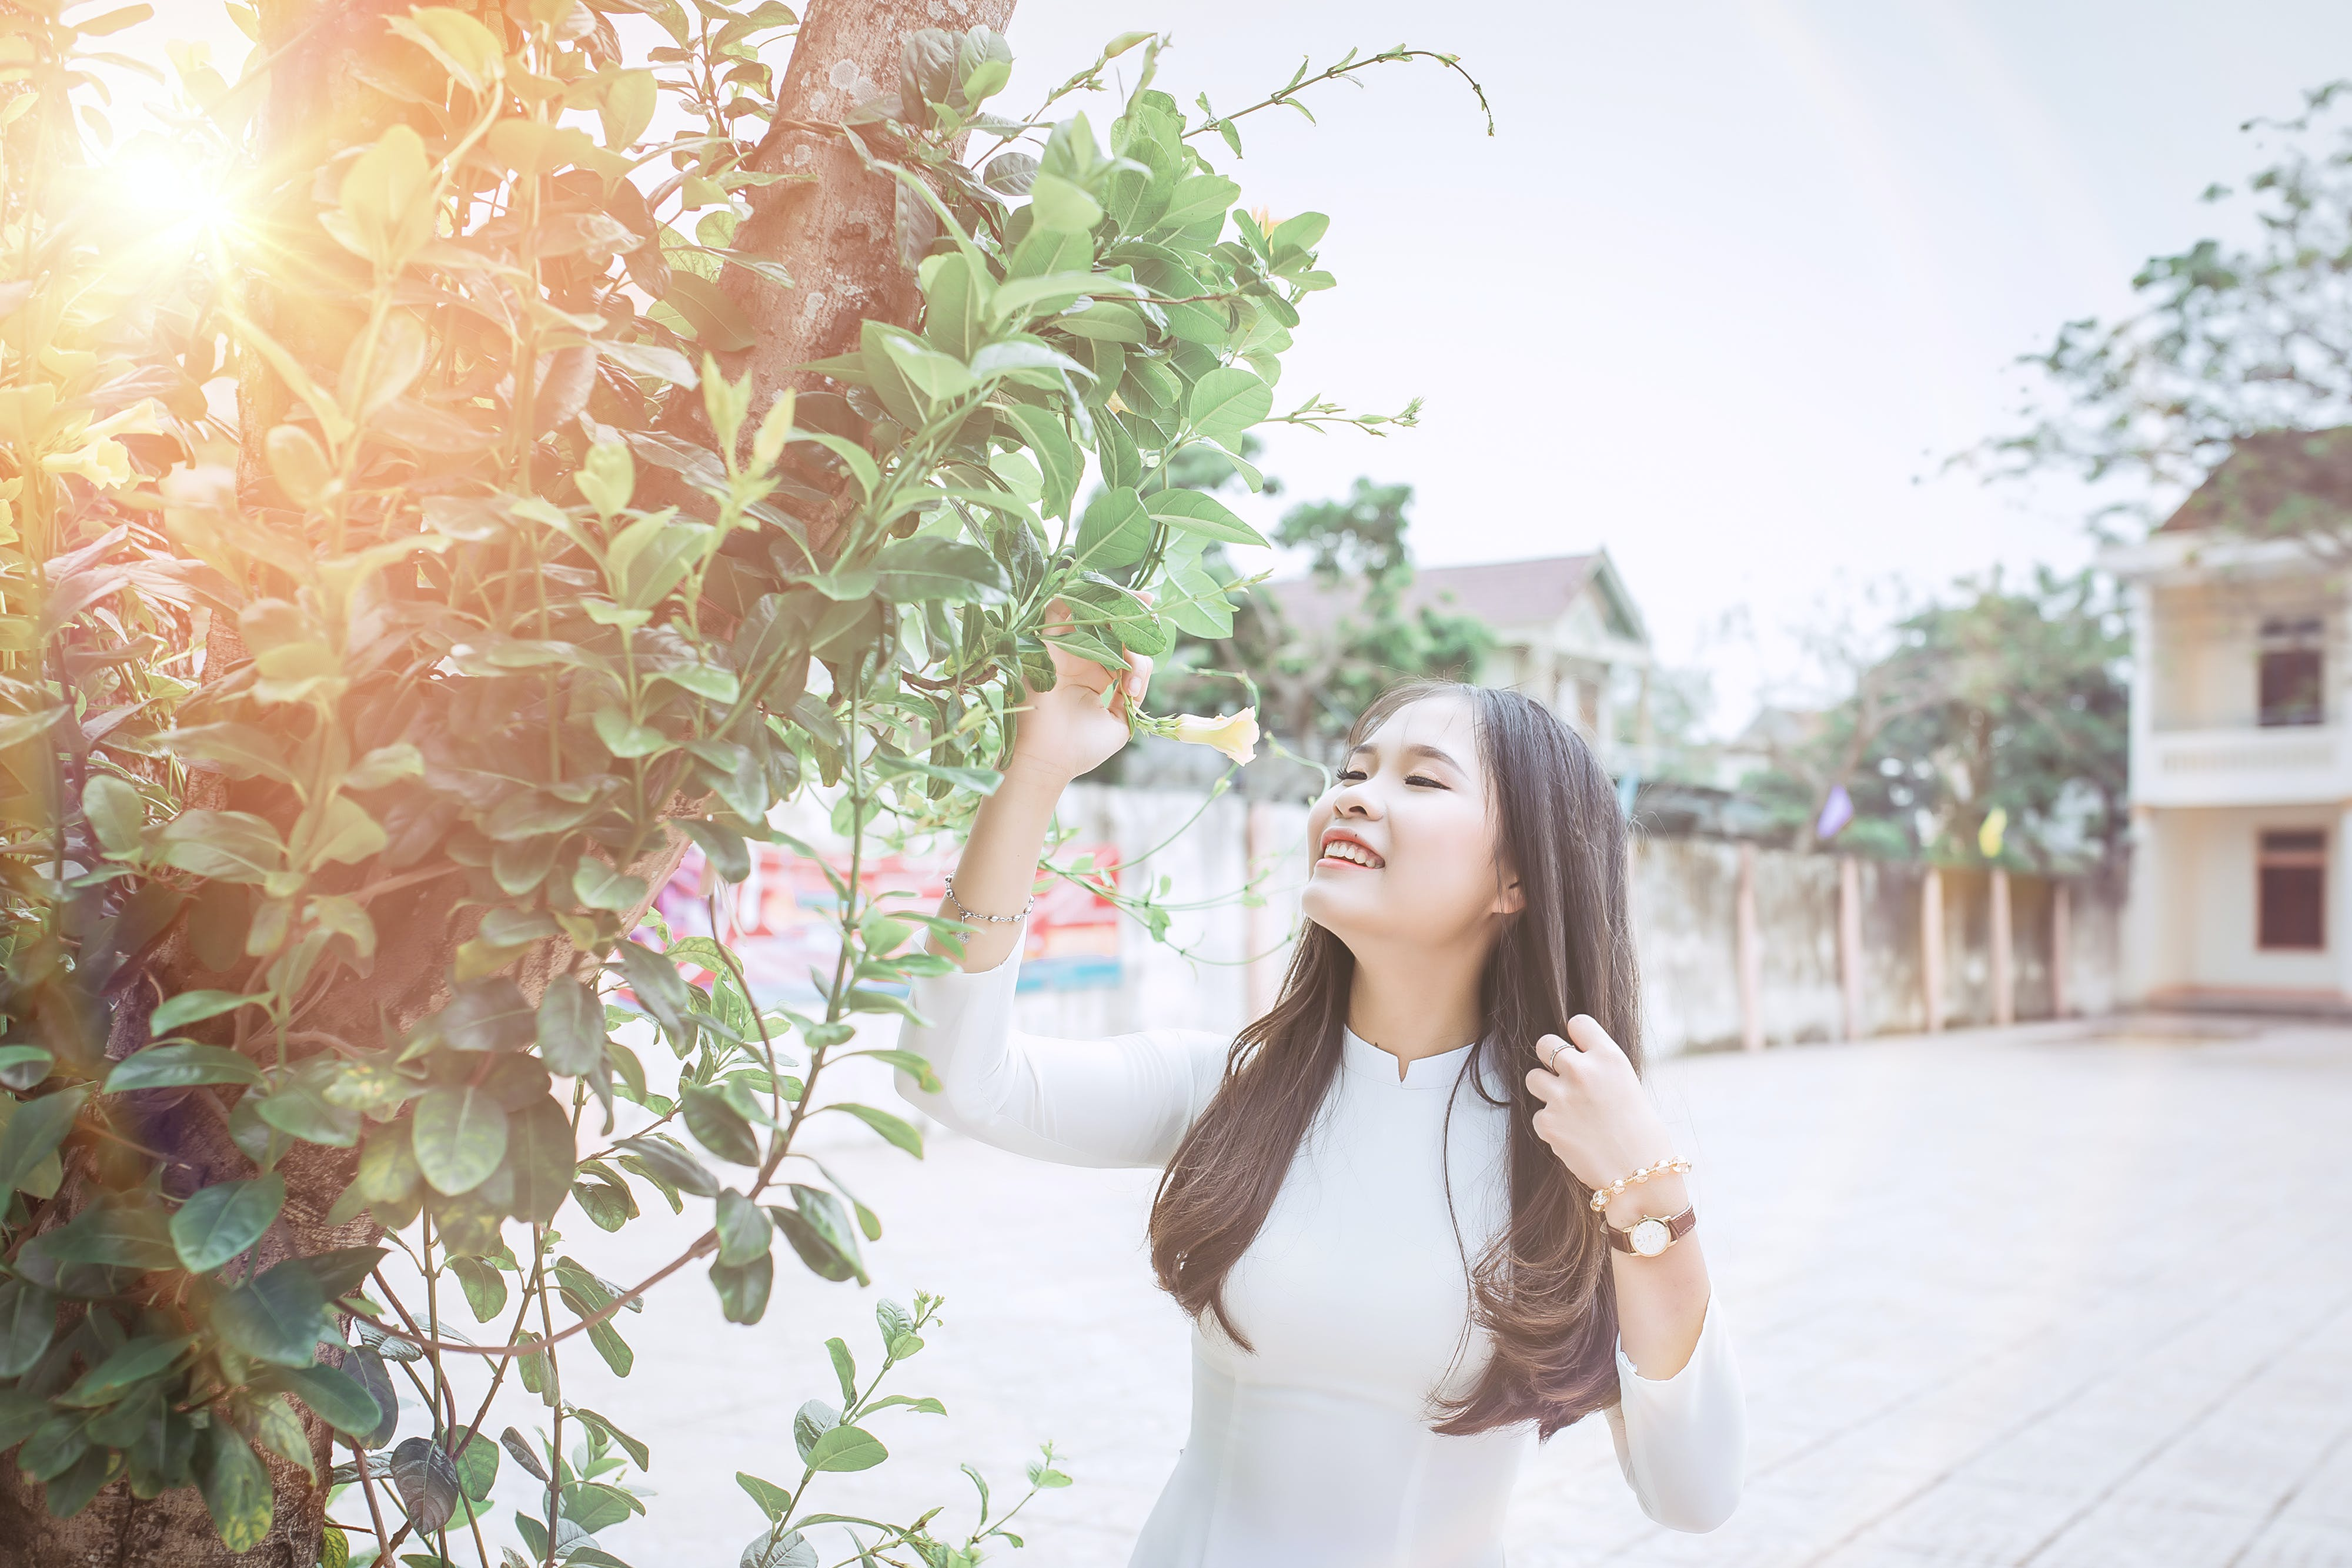 Photography of a Woman Near Tree